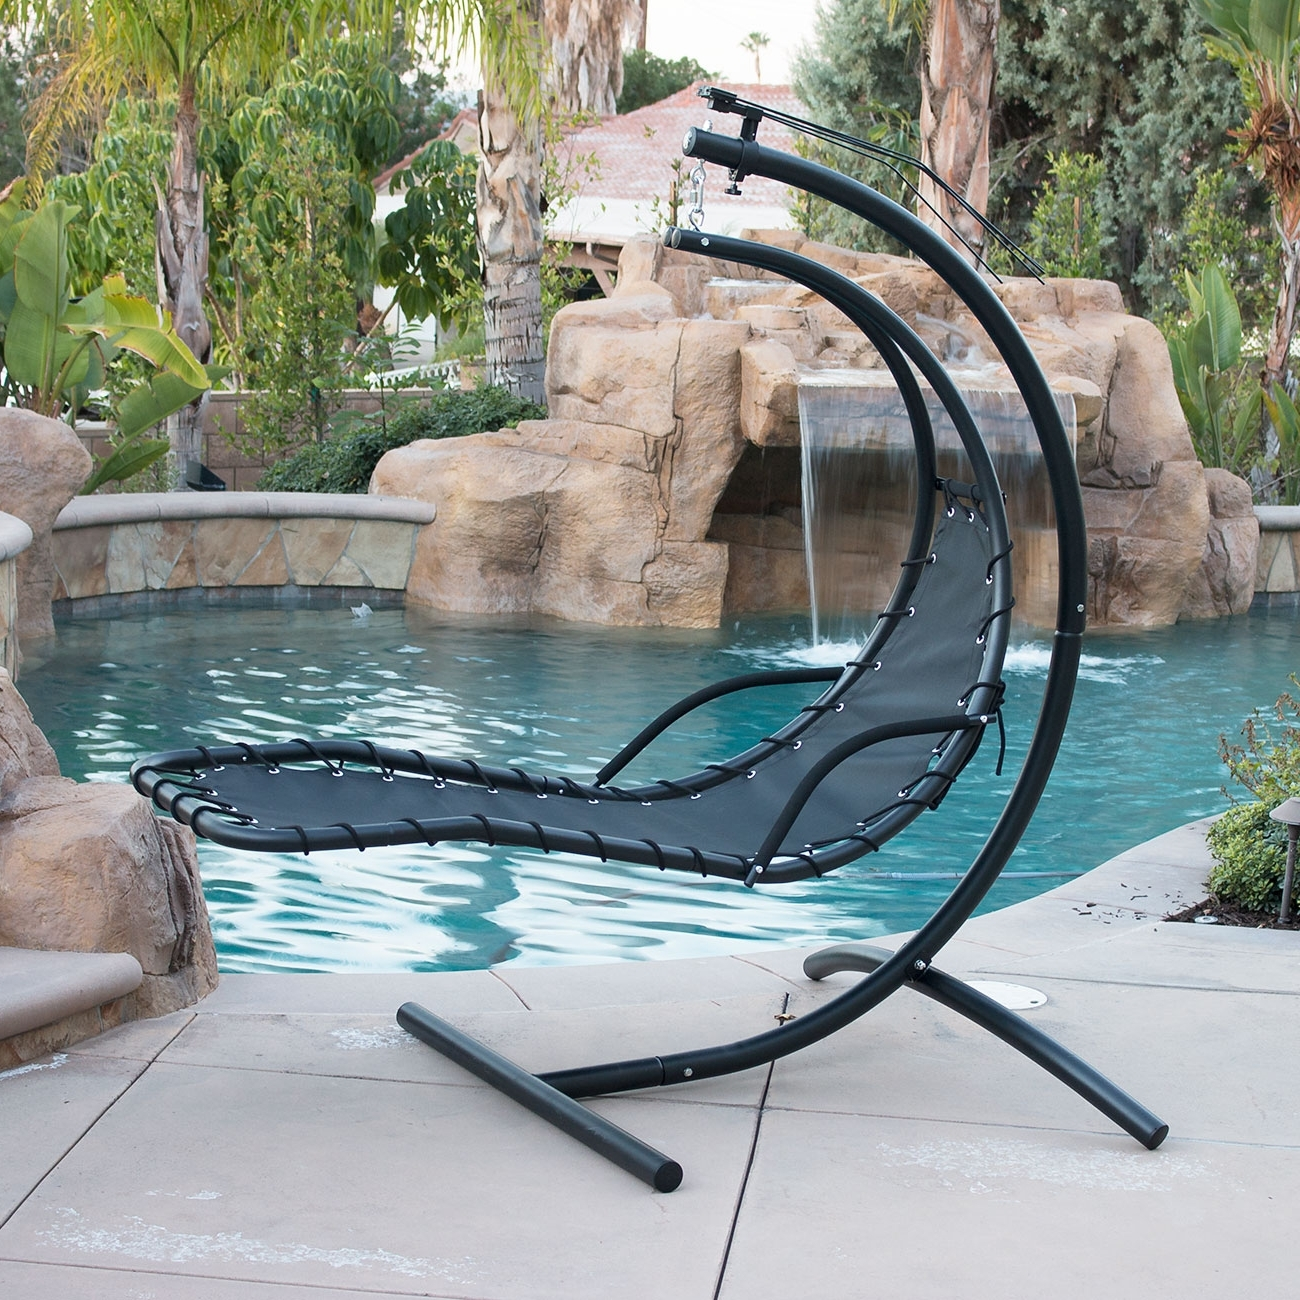 Hanging Chaise Lounge Chair Hammock Swing Canopy Glider Outdoor In Most Up To Date Chaise Lounge Chairs For Sunroom (View 6 of 15)